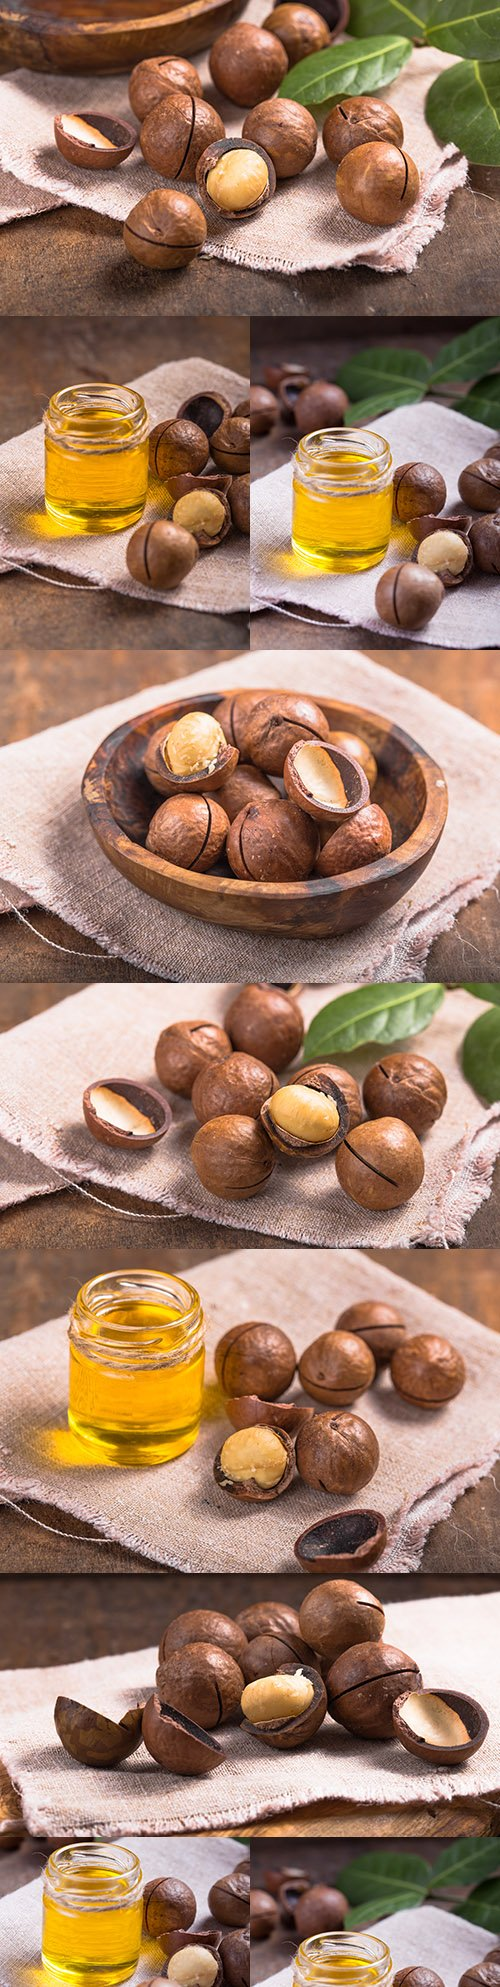 Aromatic oil and macadamia nut with leaves on sac